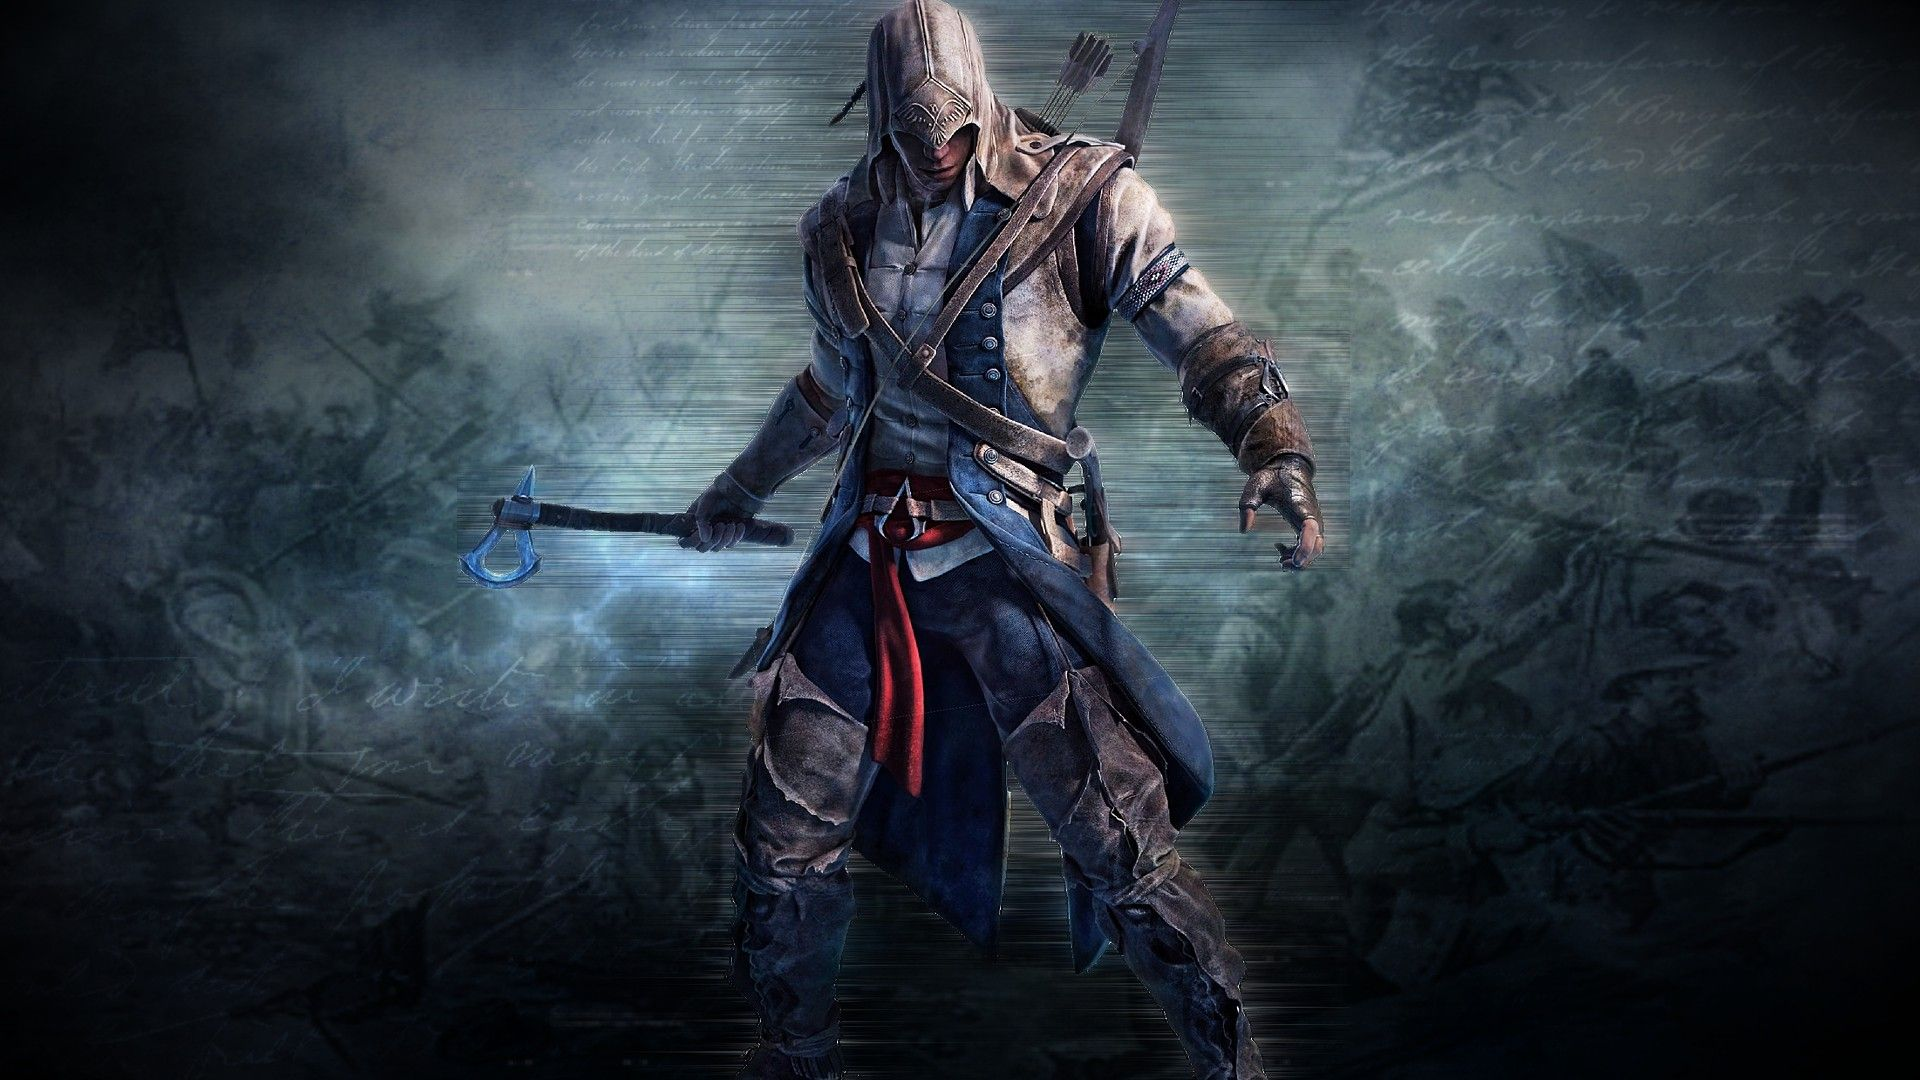 Assassins Creed Wallpaper Hd Pixelstalk Assassin Creed Backgrounds Group 1920x1080